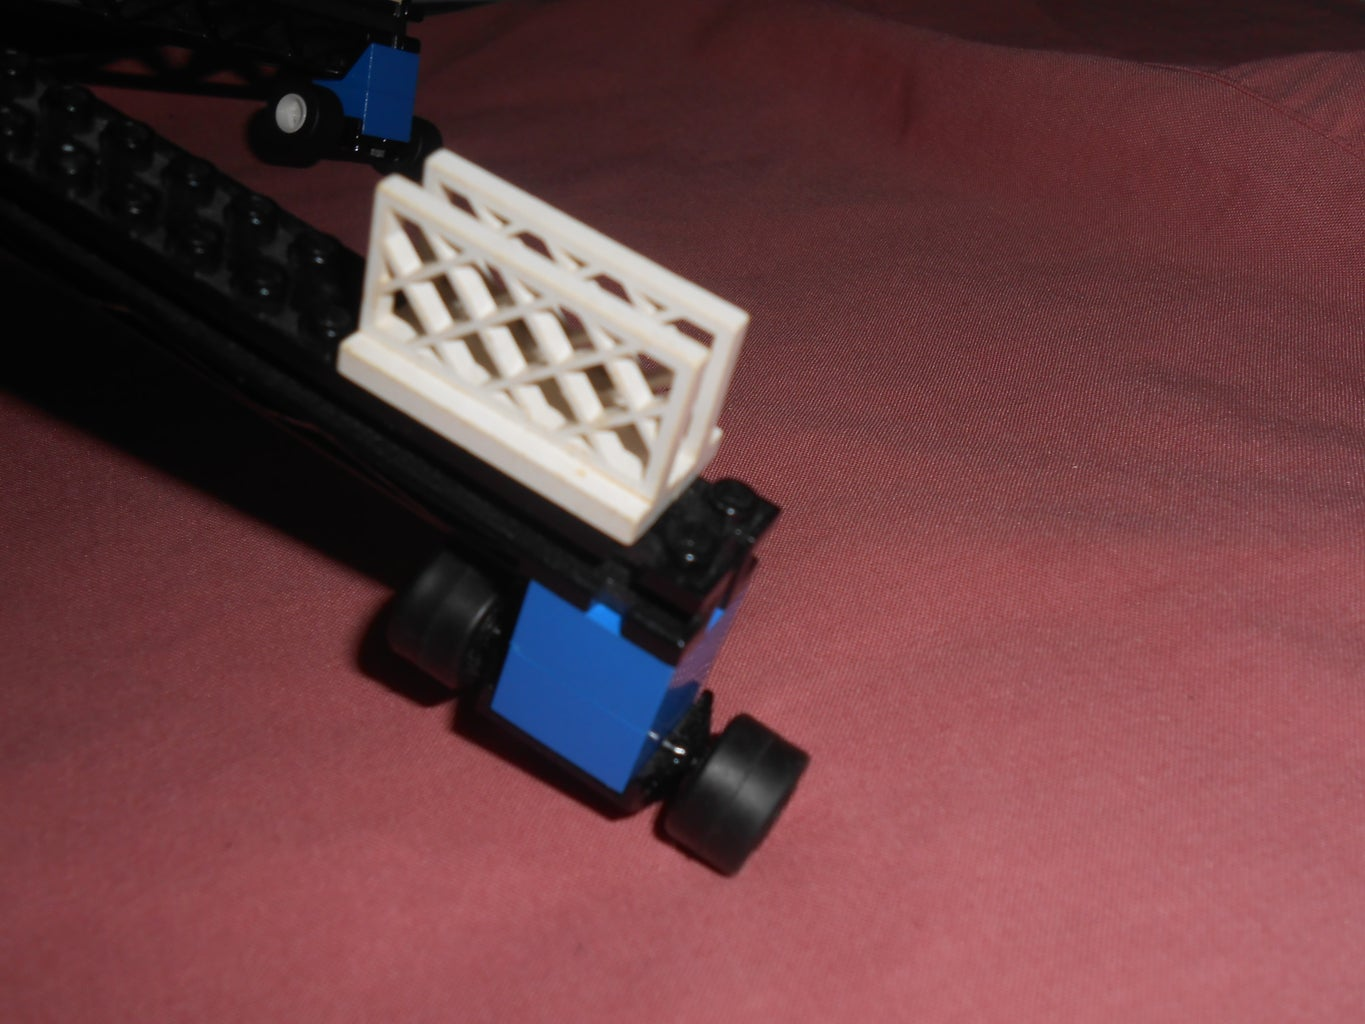 Build the Top of the Spinner (the Part That Rotates)